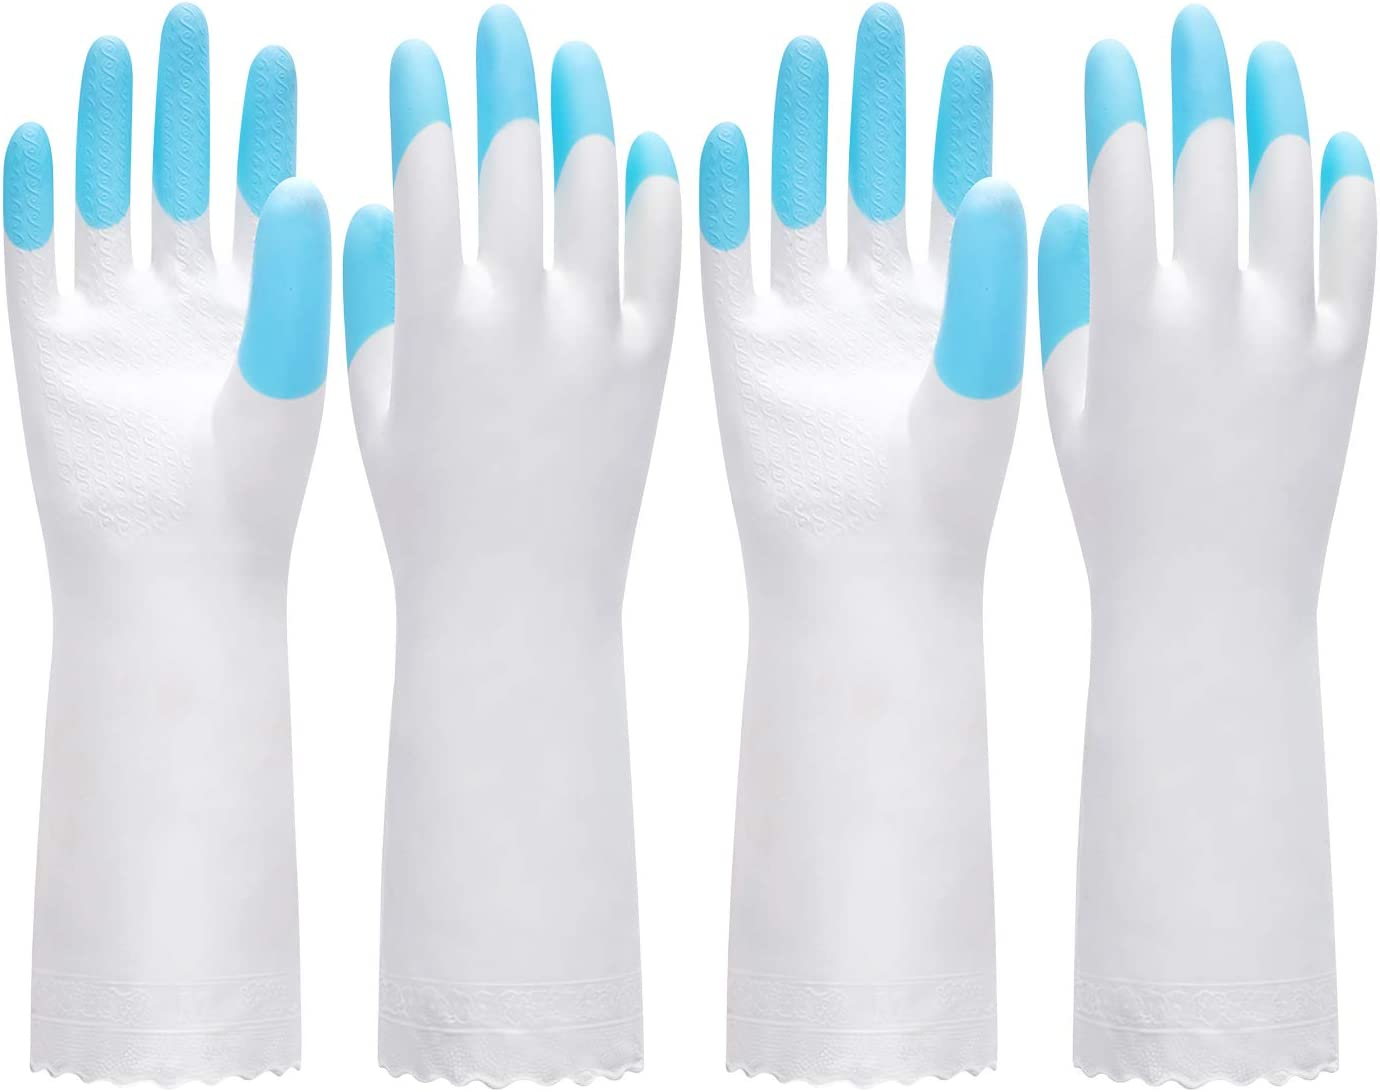 Pacific PPE 2Pairs Cleaning Glove Reusable Household Dishwashing Gloves-Latex Free Waterproof PVC Gloves for Kitchen,Gardening Gloves Unlined(Blue,M)